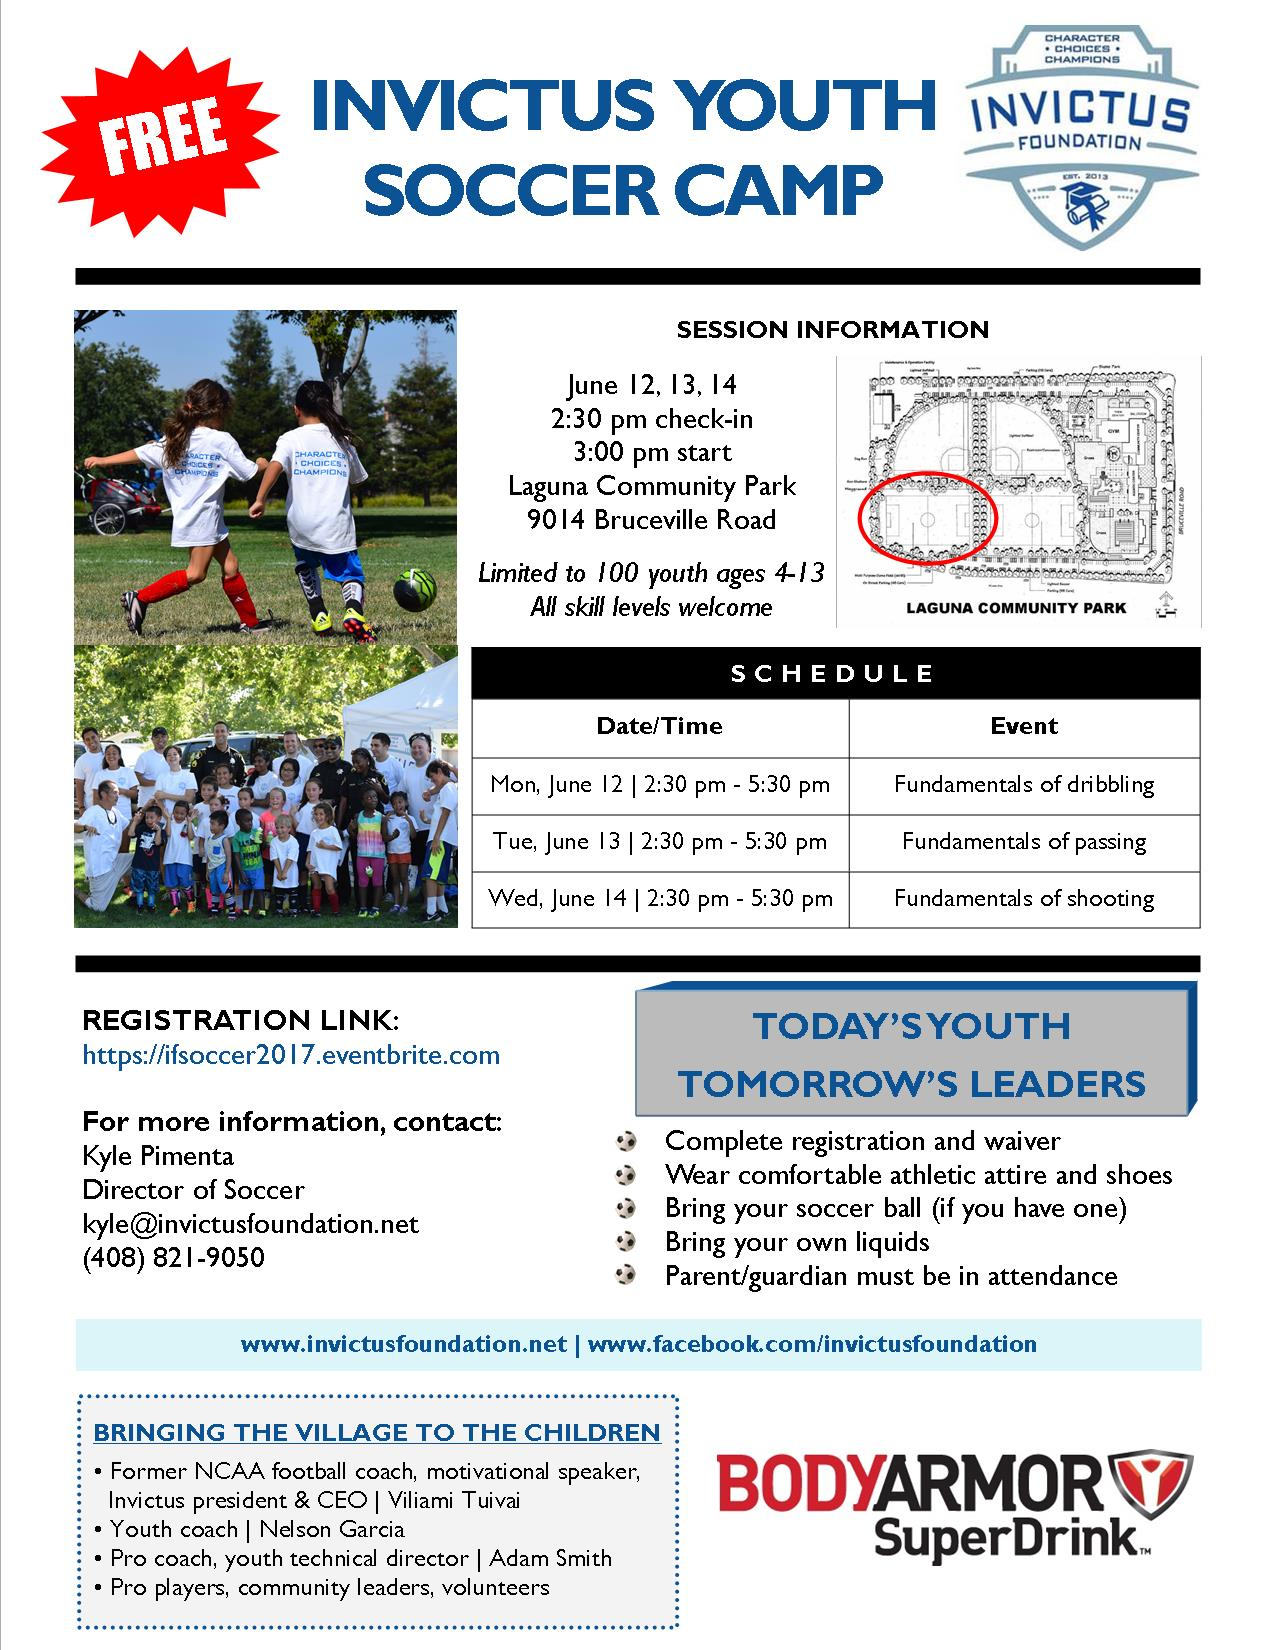 2017 Invictus Youth Soccer Camp flyer